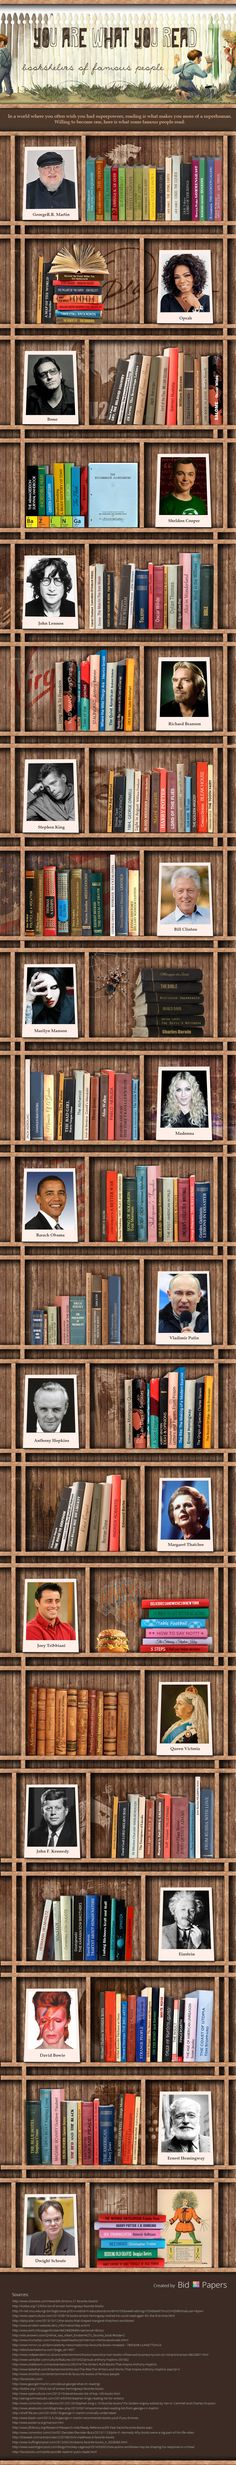 You Are What You Read: Bookshelves of Famous People (and characters)!